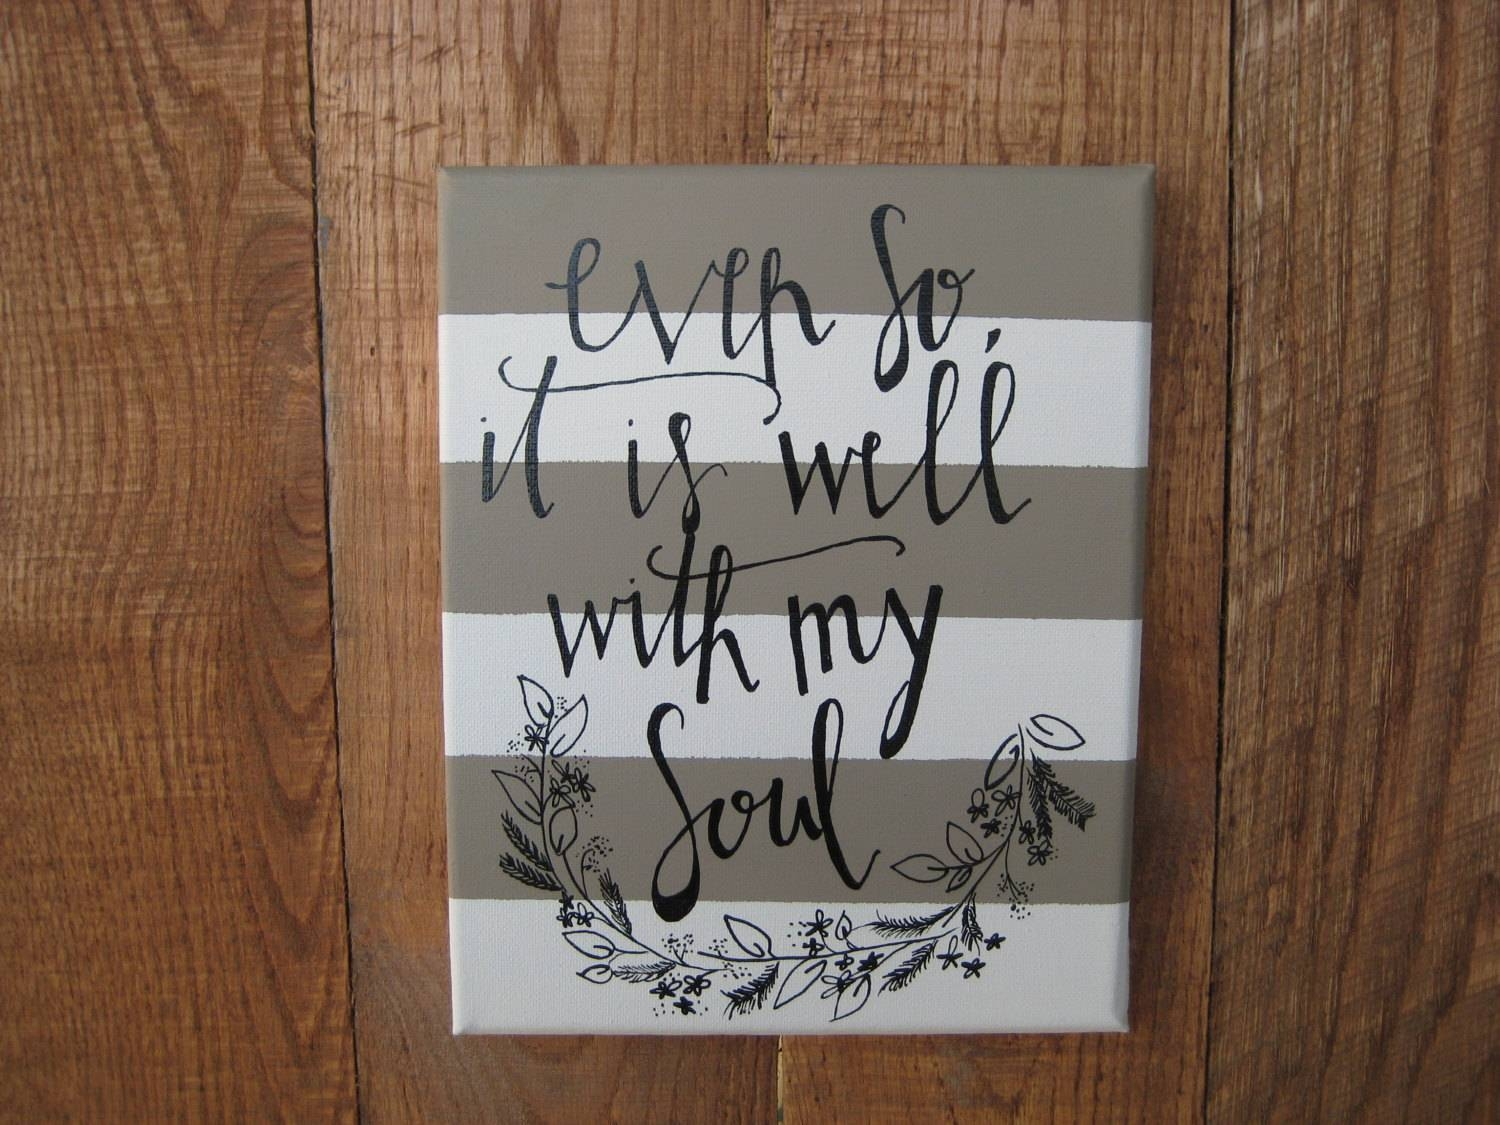 Wall Art Designs: Christian Canvas Wall Art On Your Home And Throughout Most Current Christian Canvas Wall Art (View 2 of 20)